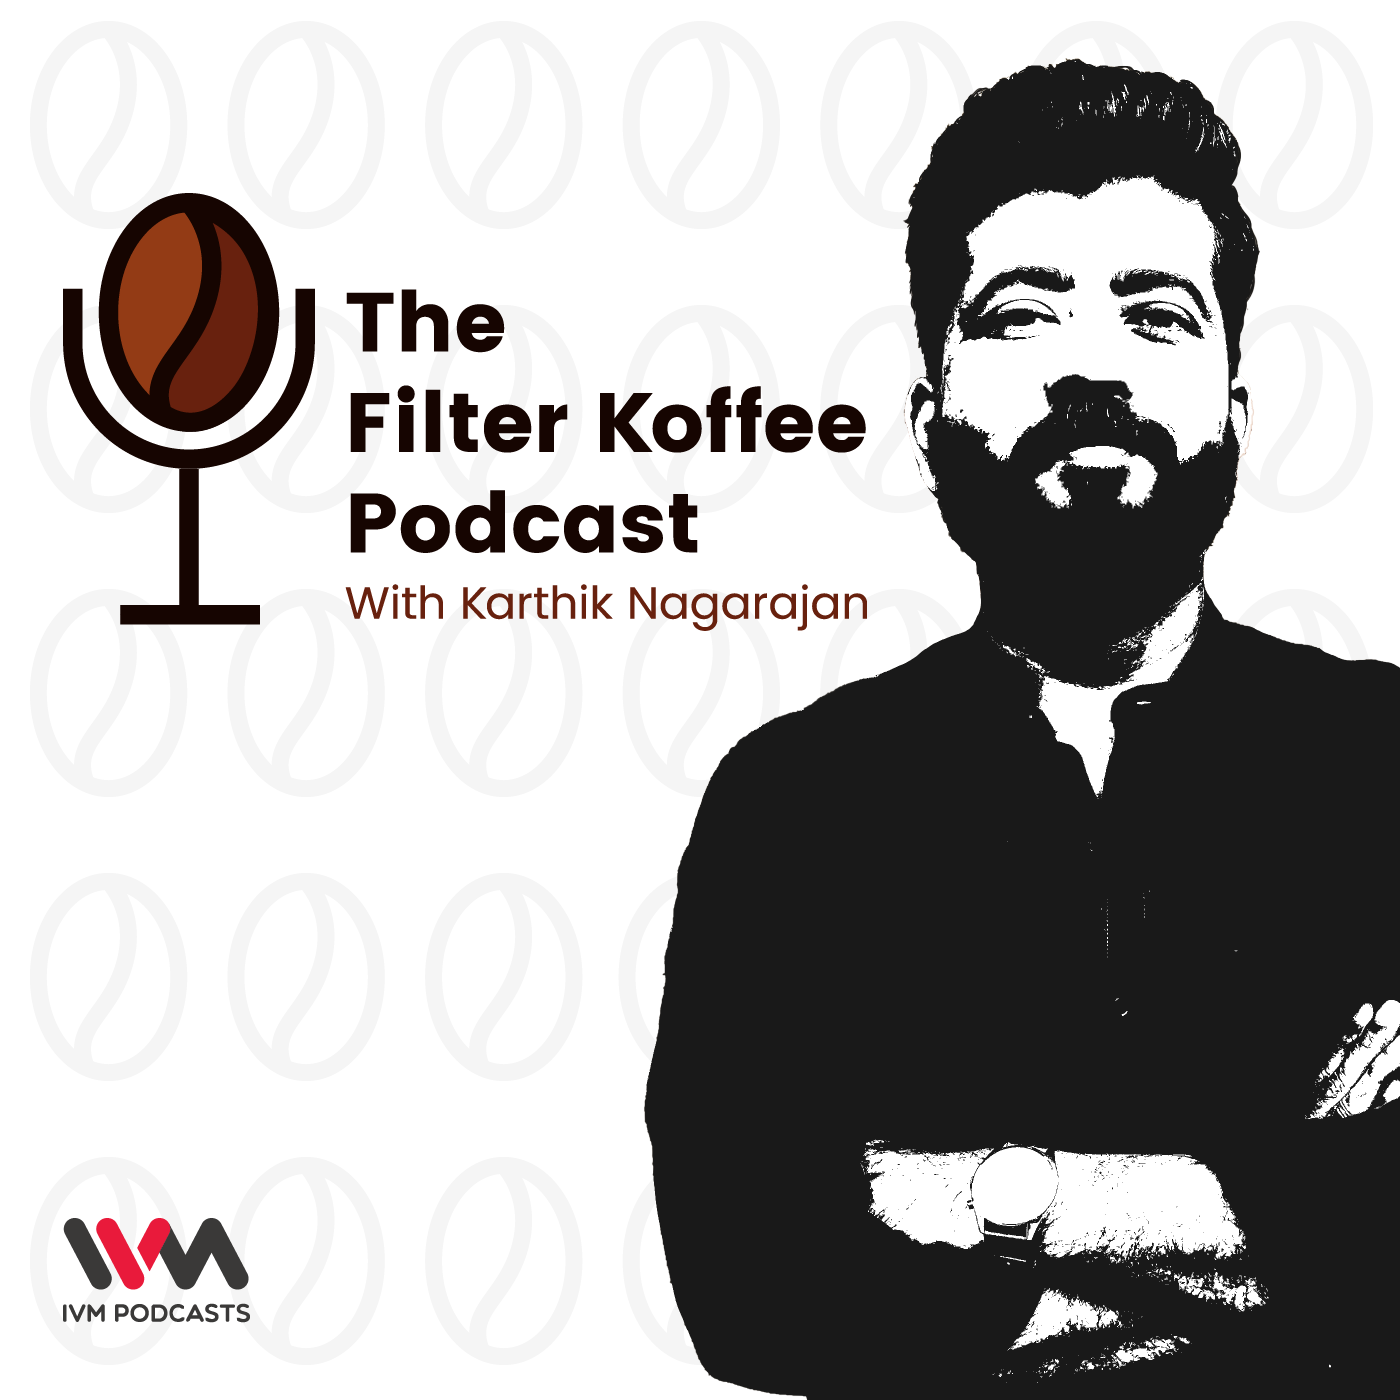 The Filter Koffee Podcast show art